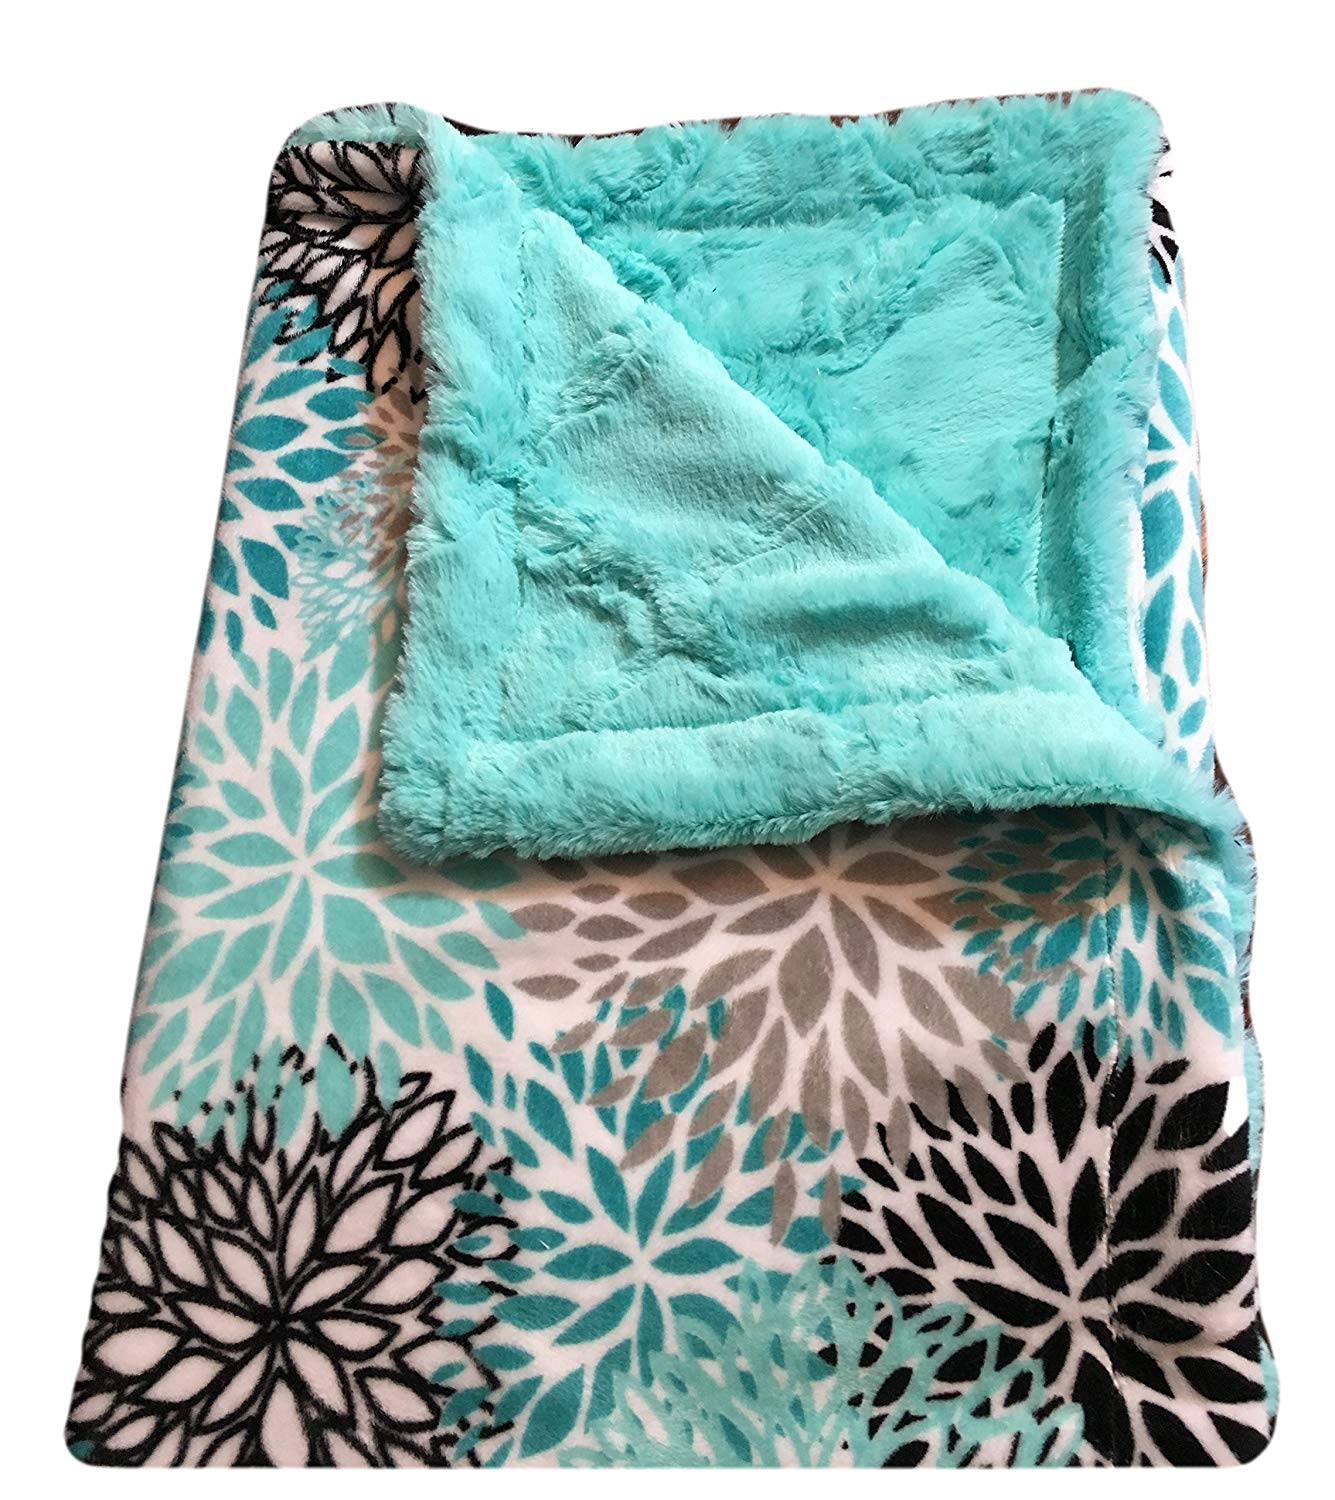 Personalized Baby Blanket- Minky Baby Blanket- Teal Blanket, Baby Boy or Girl Minky Blanket Blanket-Toddler Size Blanket